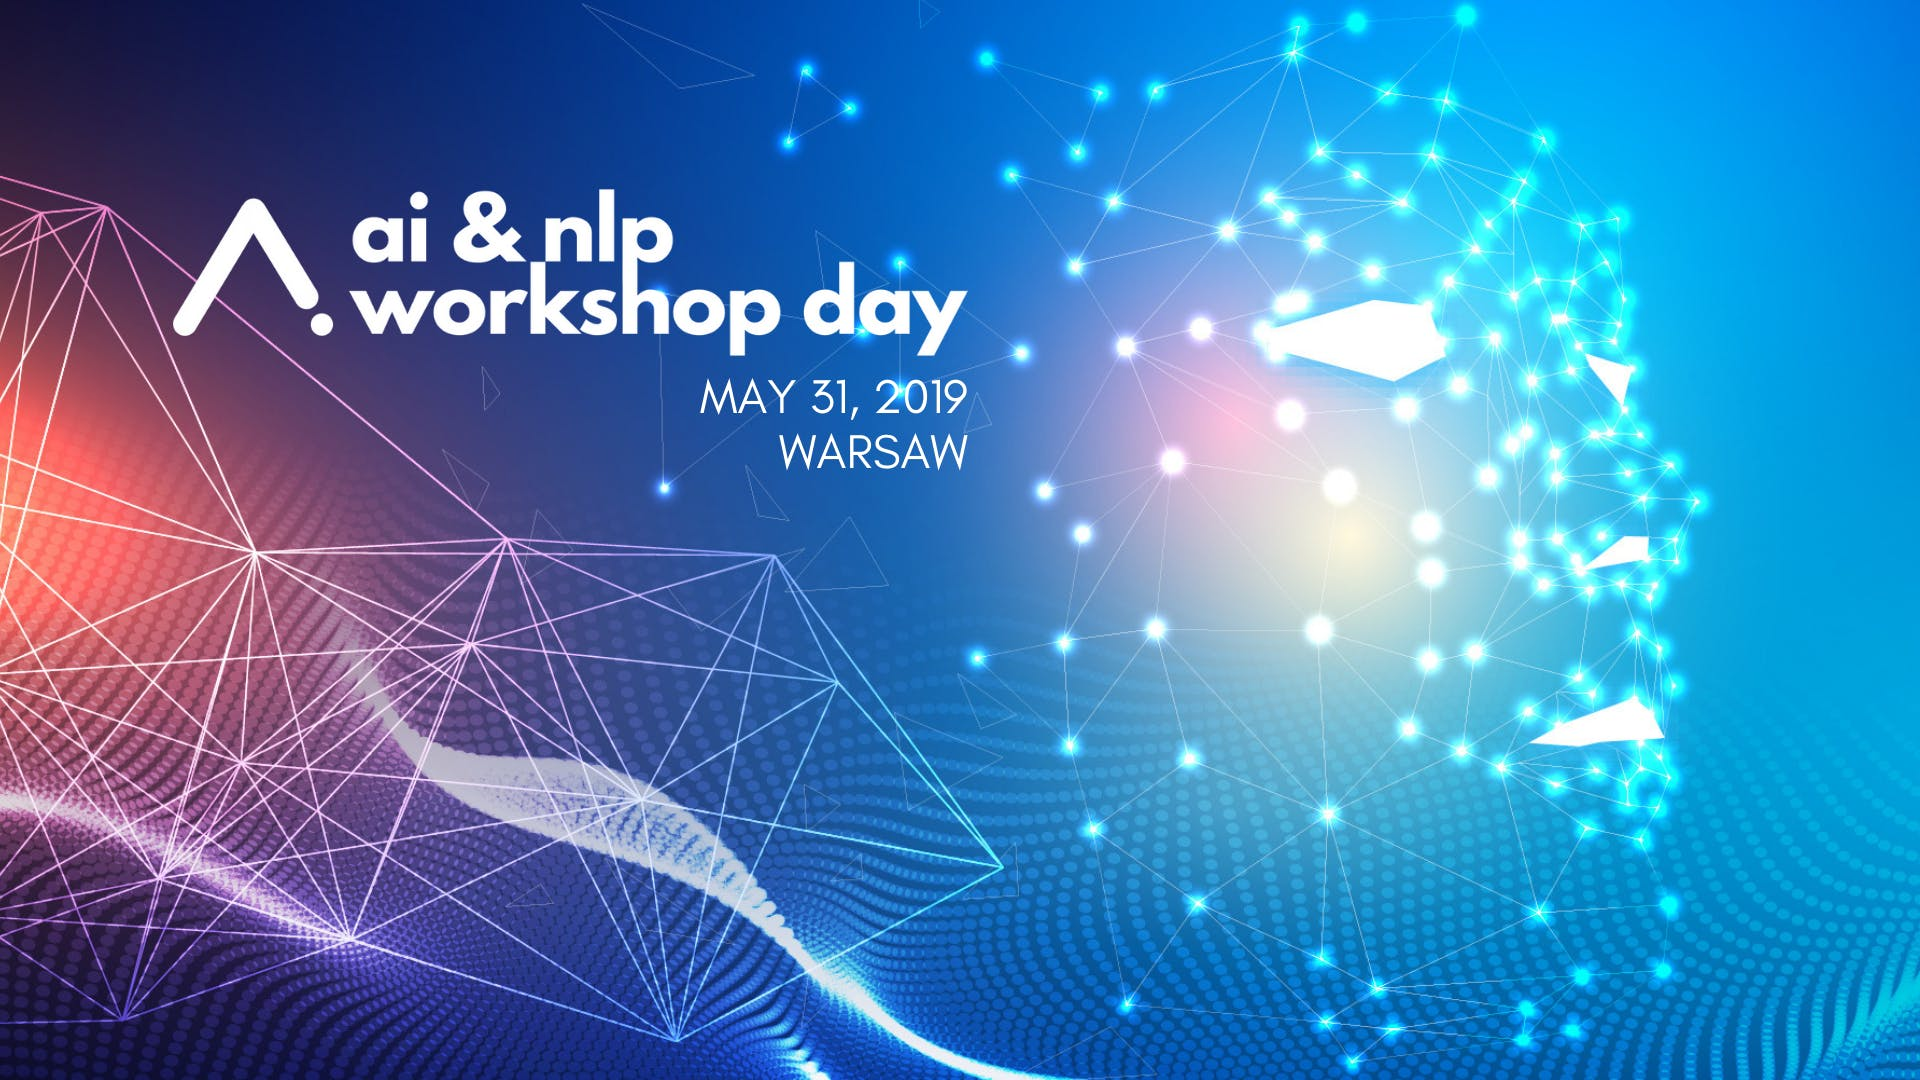 AI NLP Workshop Day 2019   31 MAY 2019 1920x1080